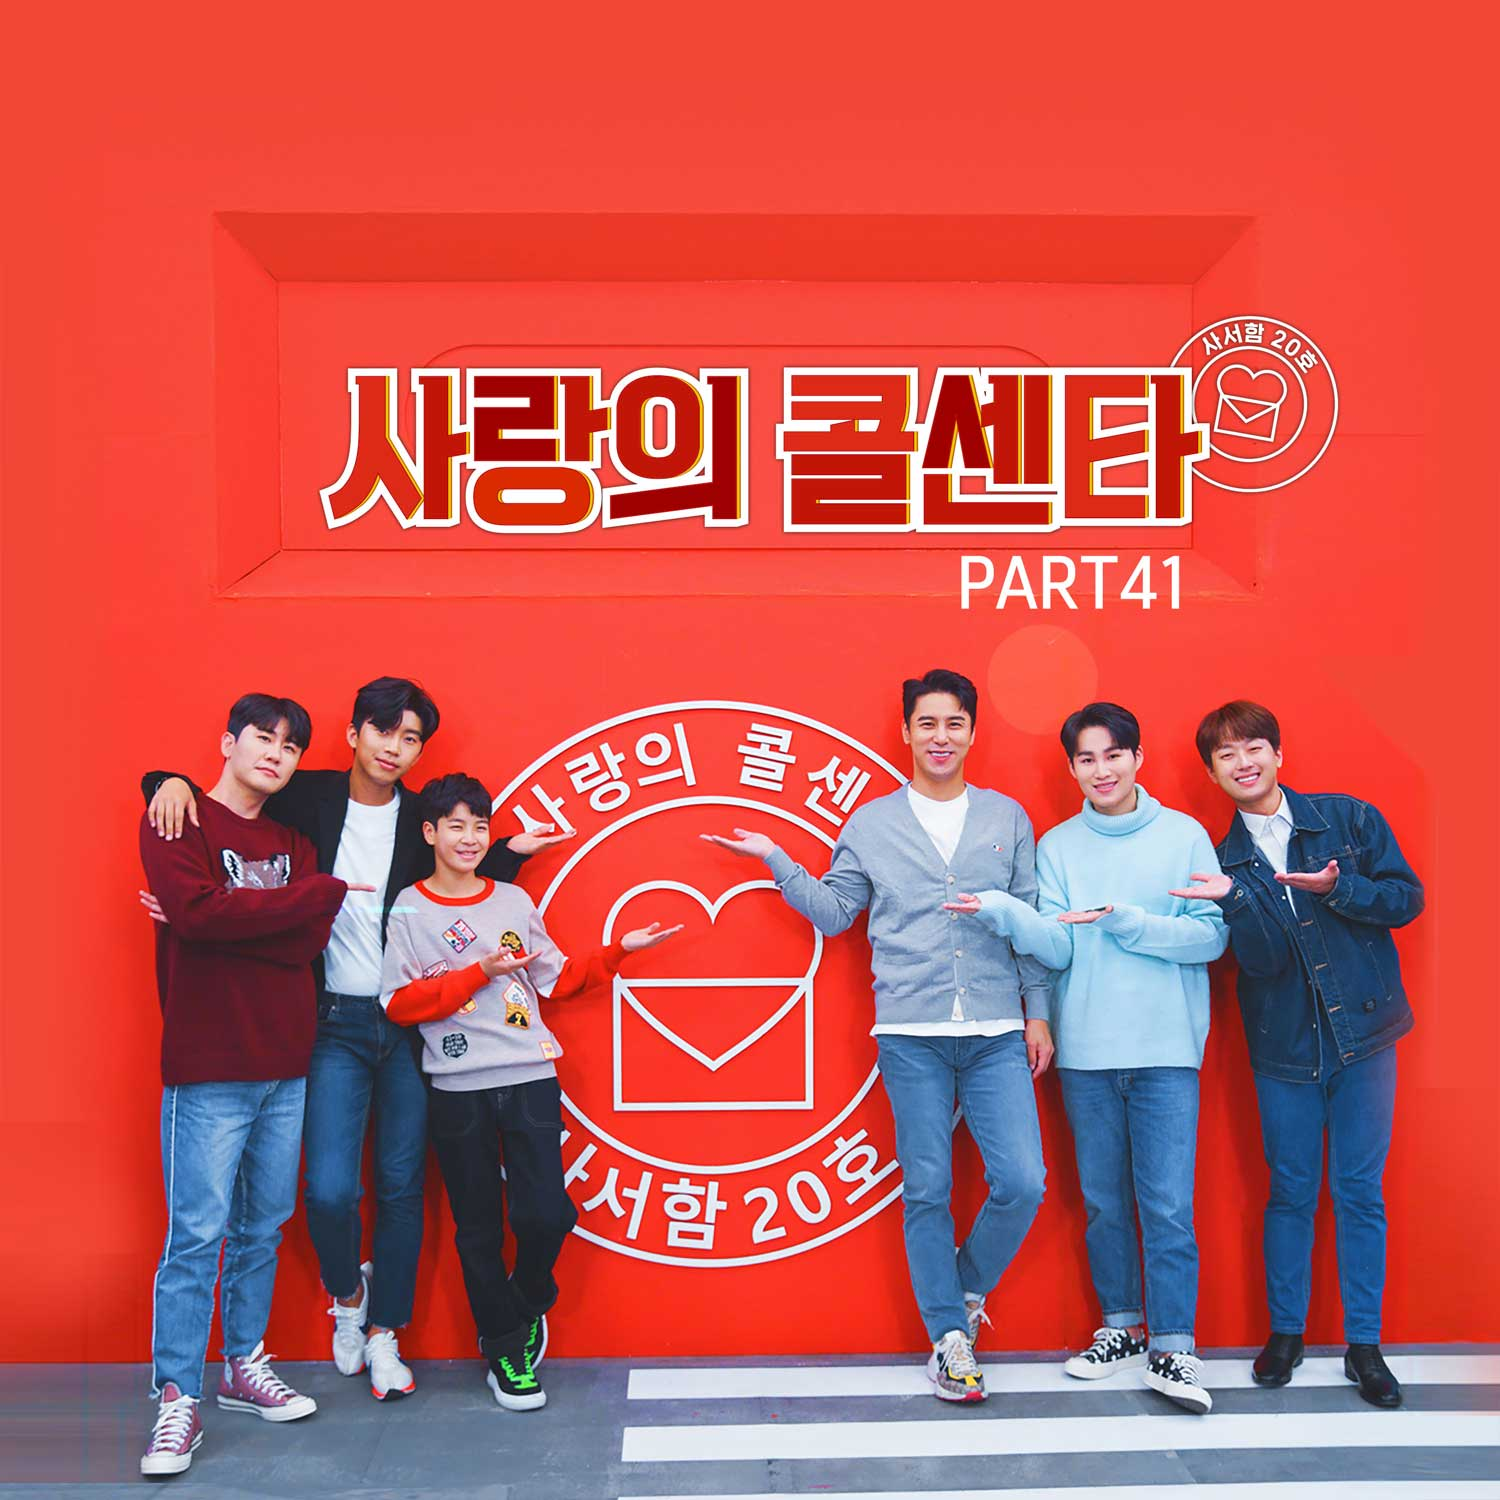 Part 41 of'Call Center of Love' released...  7 songs including'One Cup of Tears'